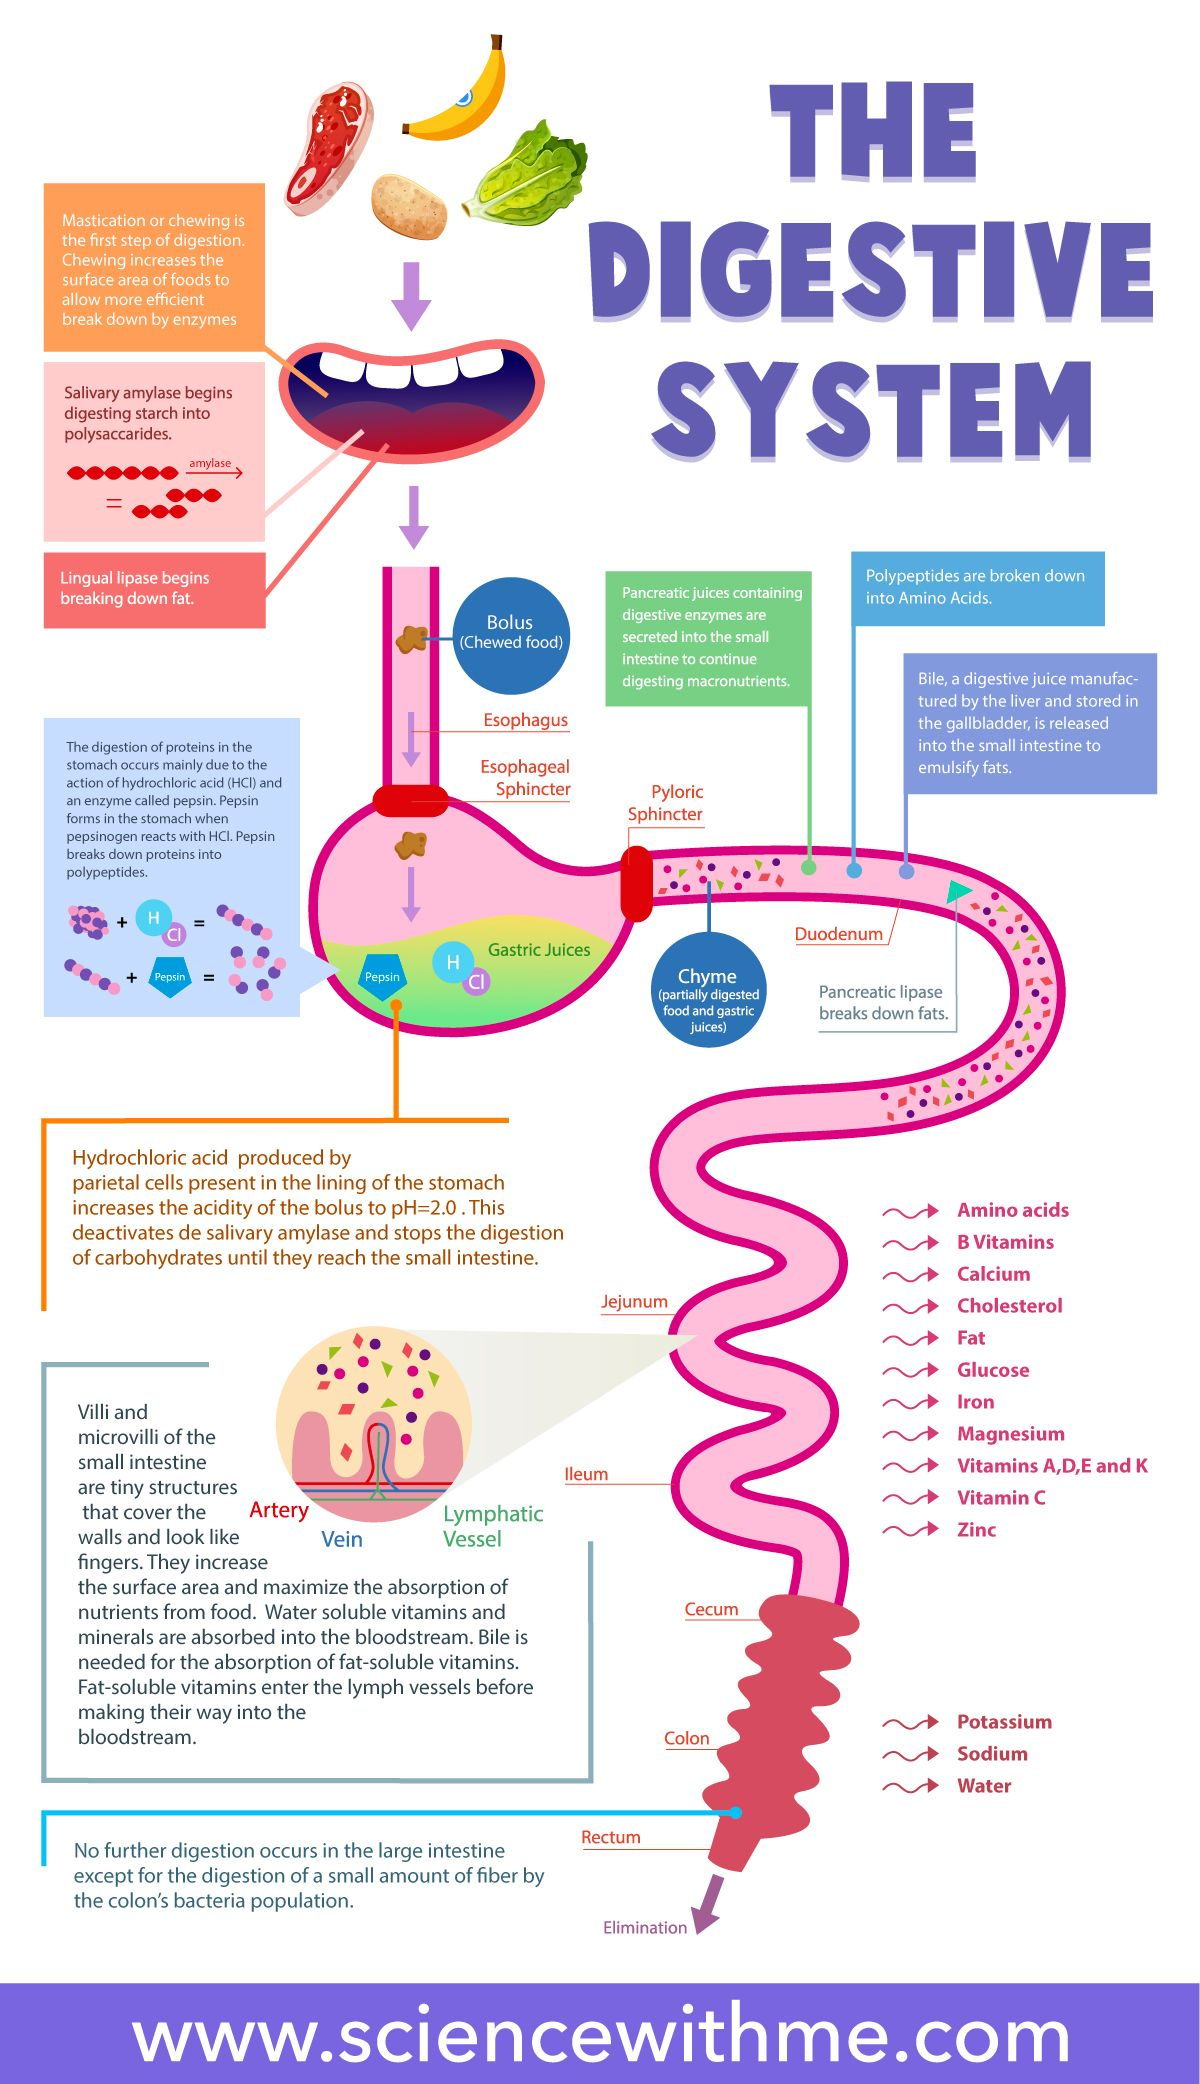 Hygiene of the digestive system is of great importance